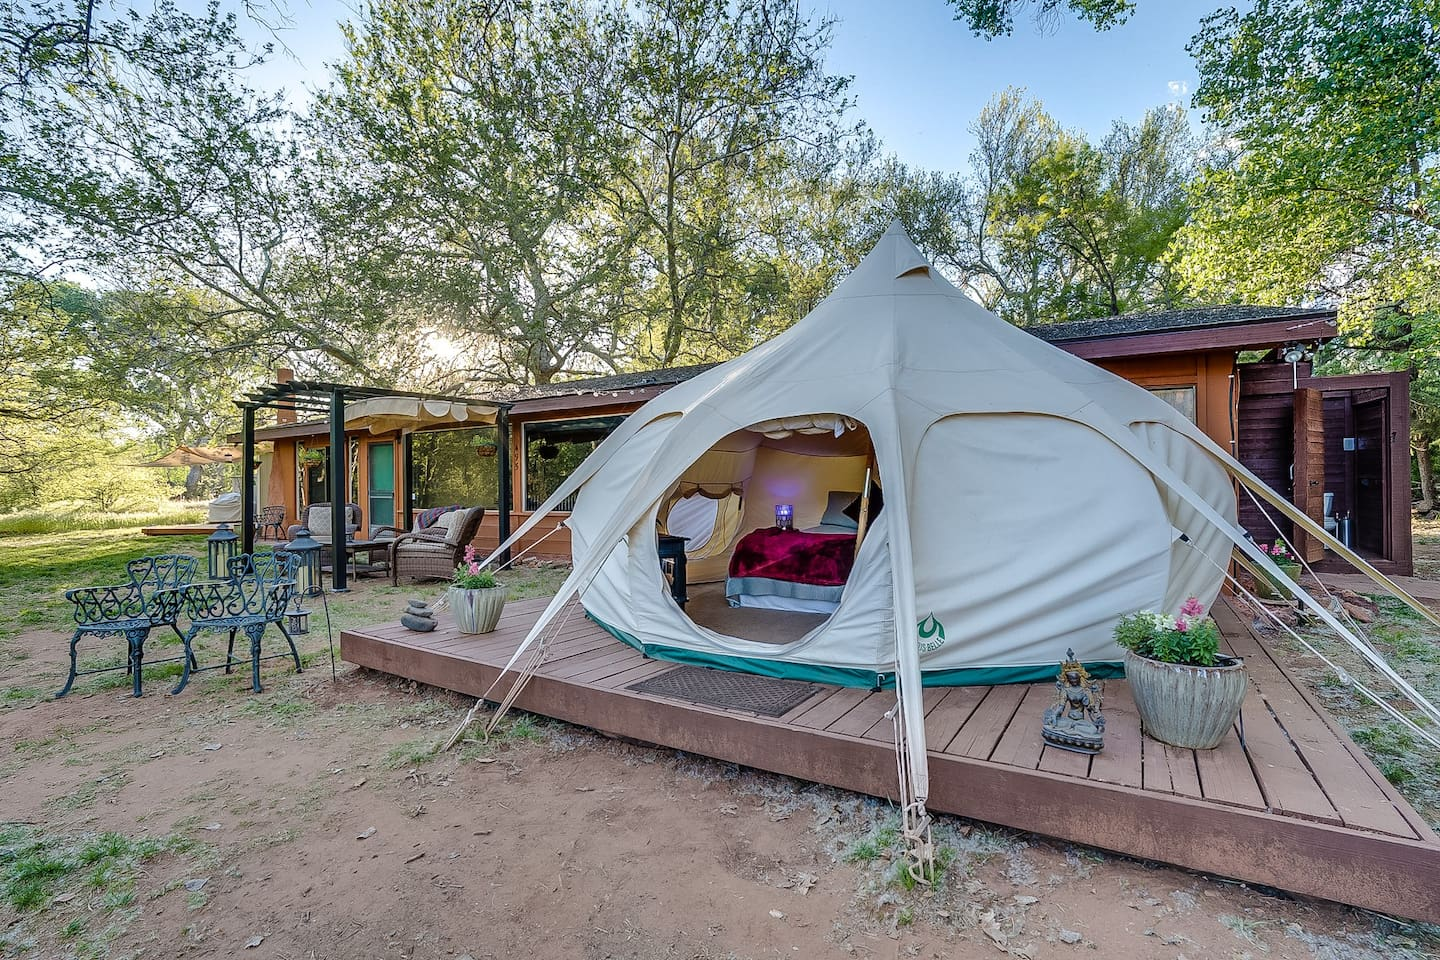 Does it get any more beautiful and charming than this!? Outdoor Sedona glamping at its finest with all the amenities you could ask for and special unique touches that make your Sedona stay incredibly unforgettable!